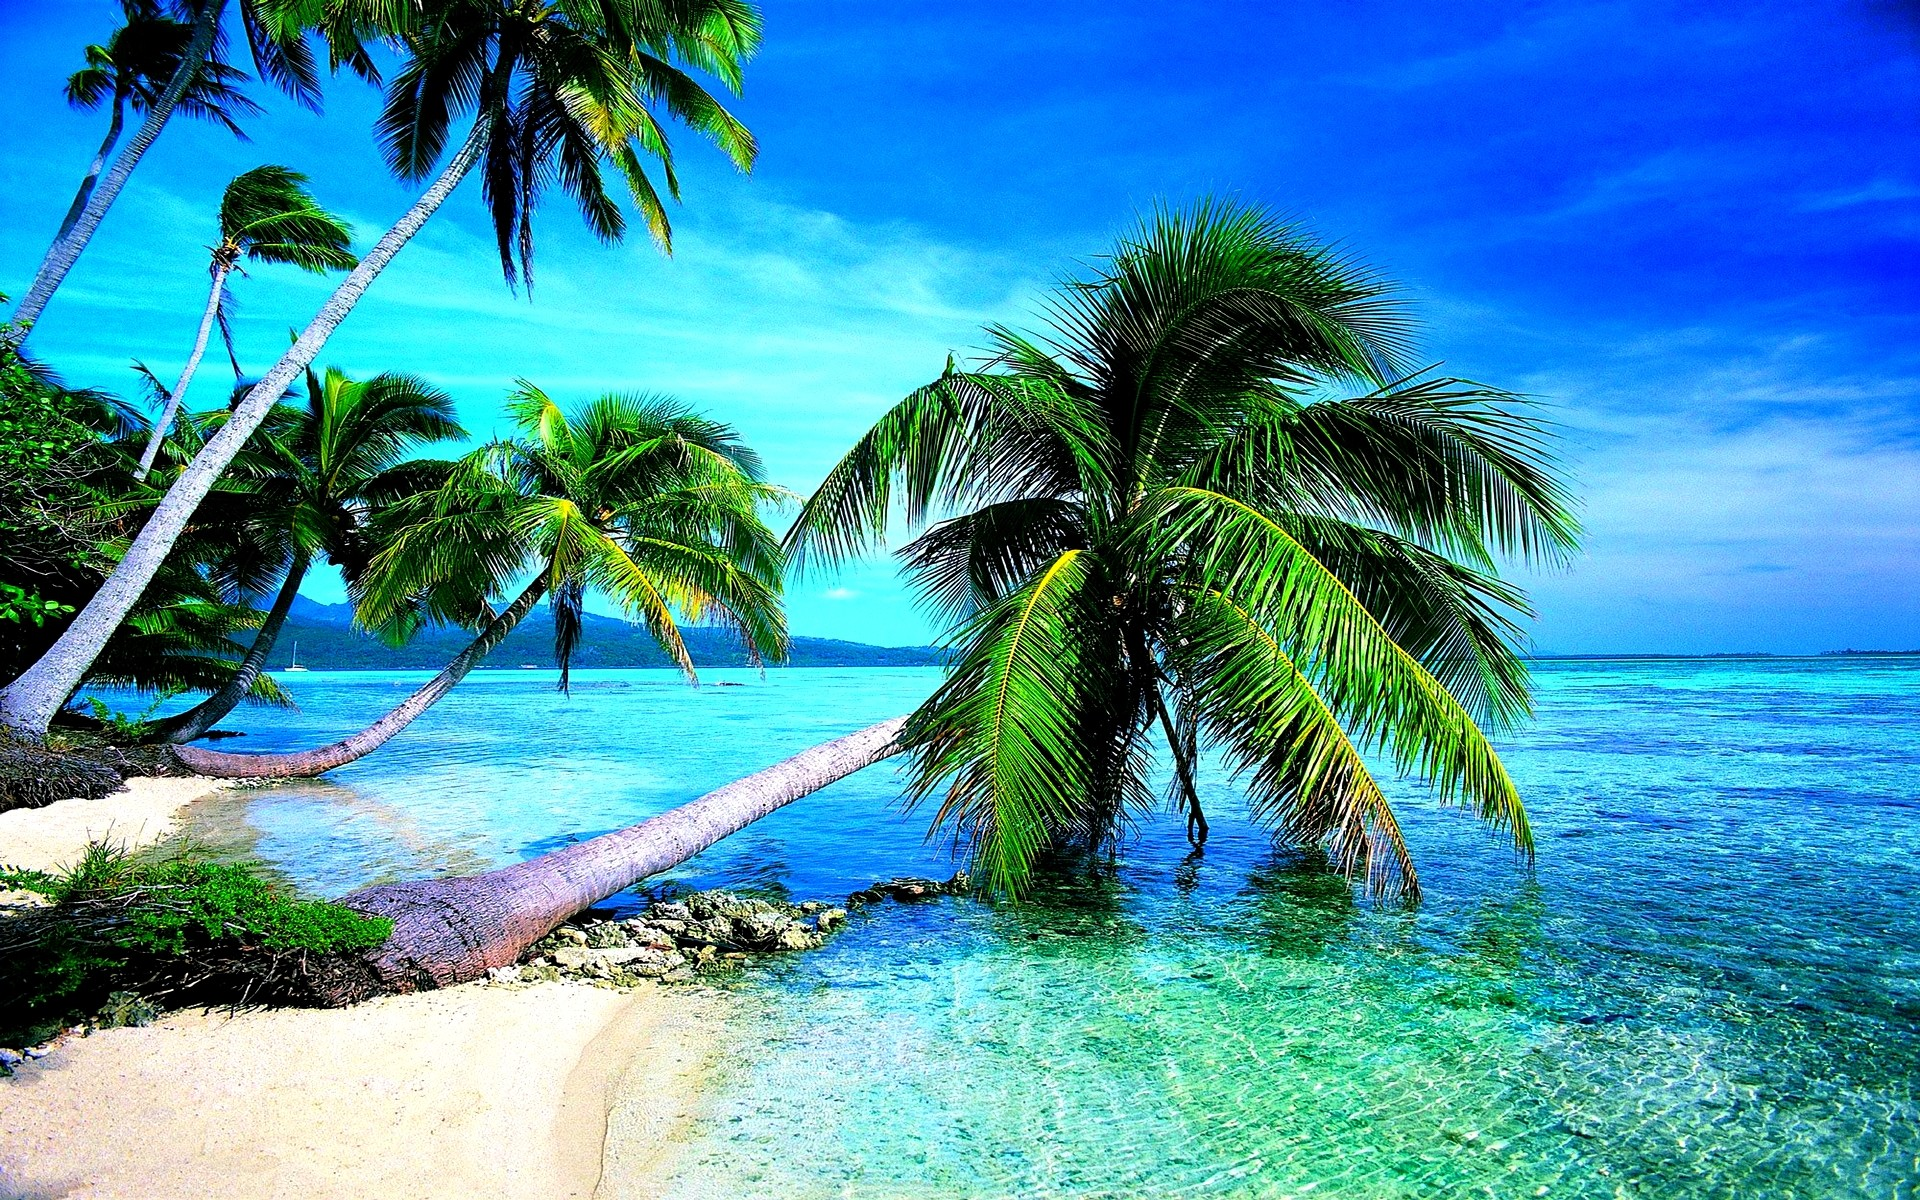 tropical beach hd image tropical beach hd wallpapers tropical beach .